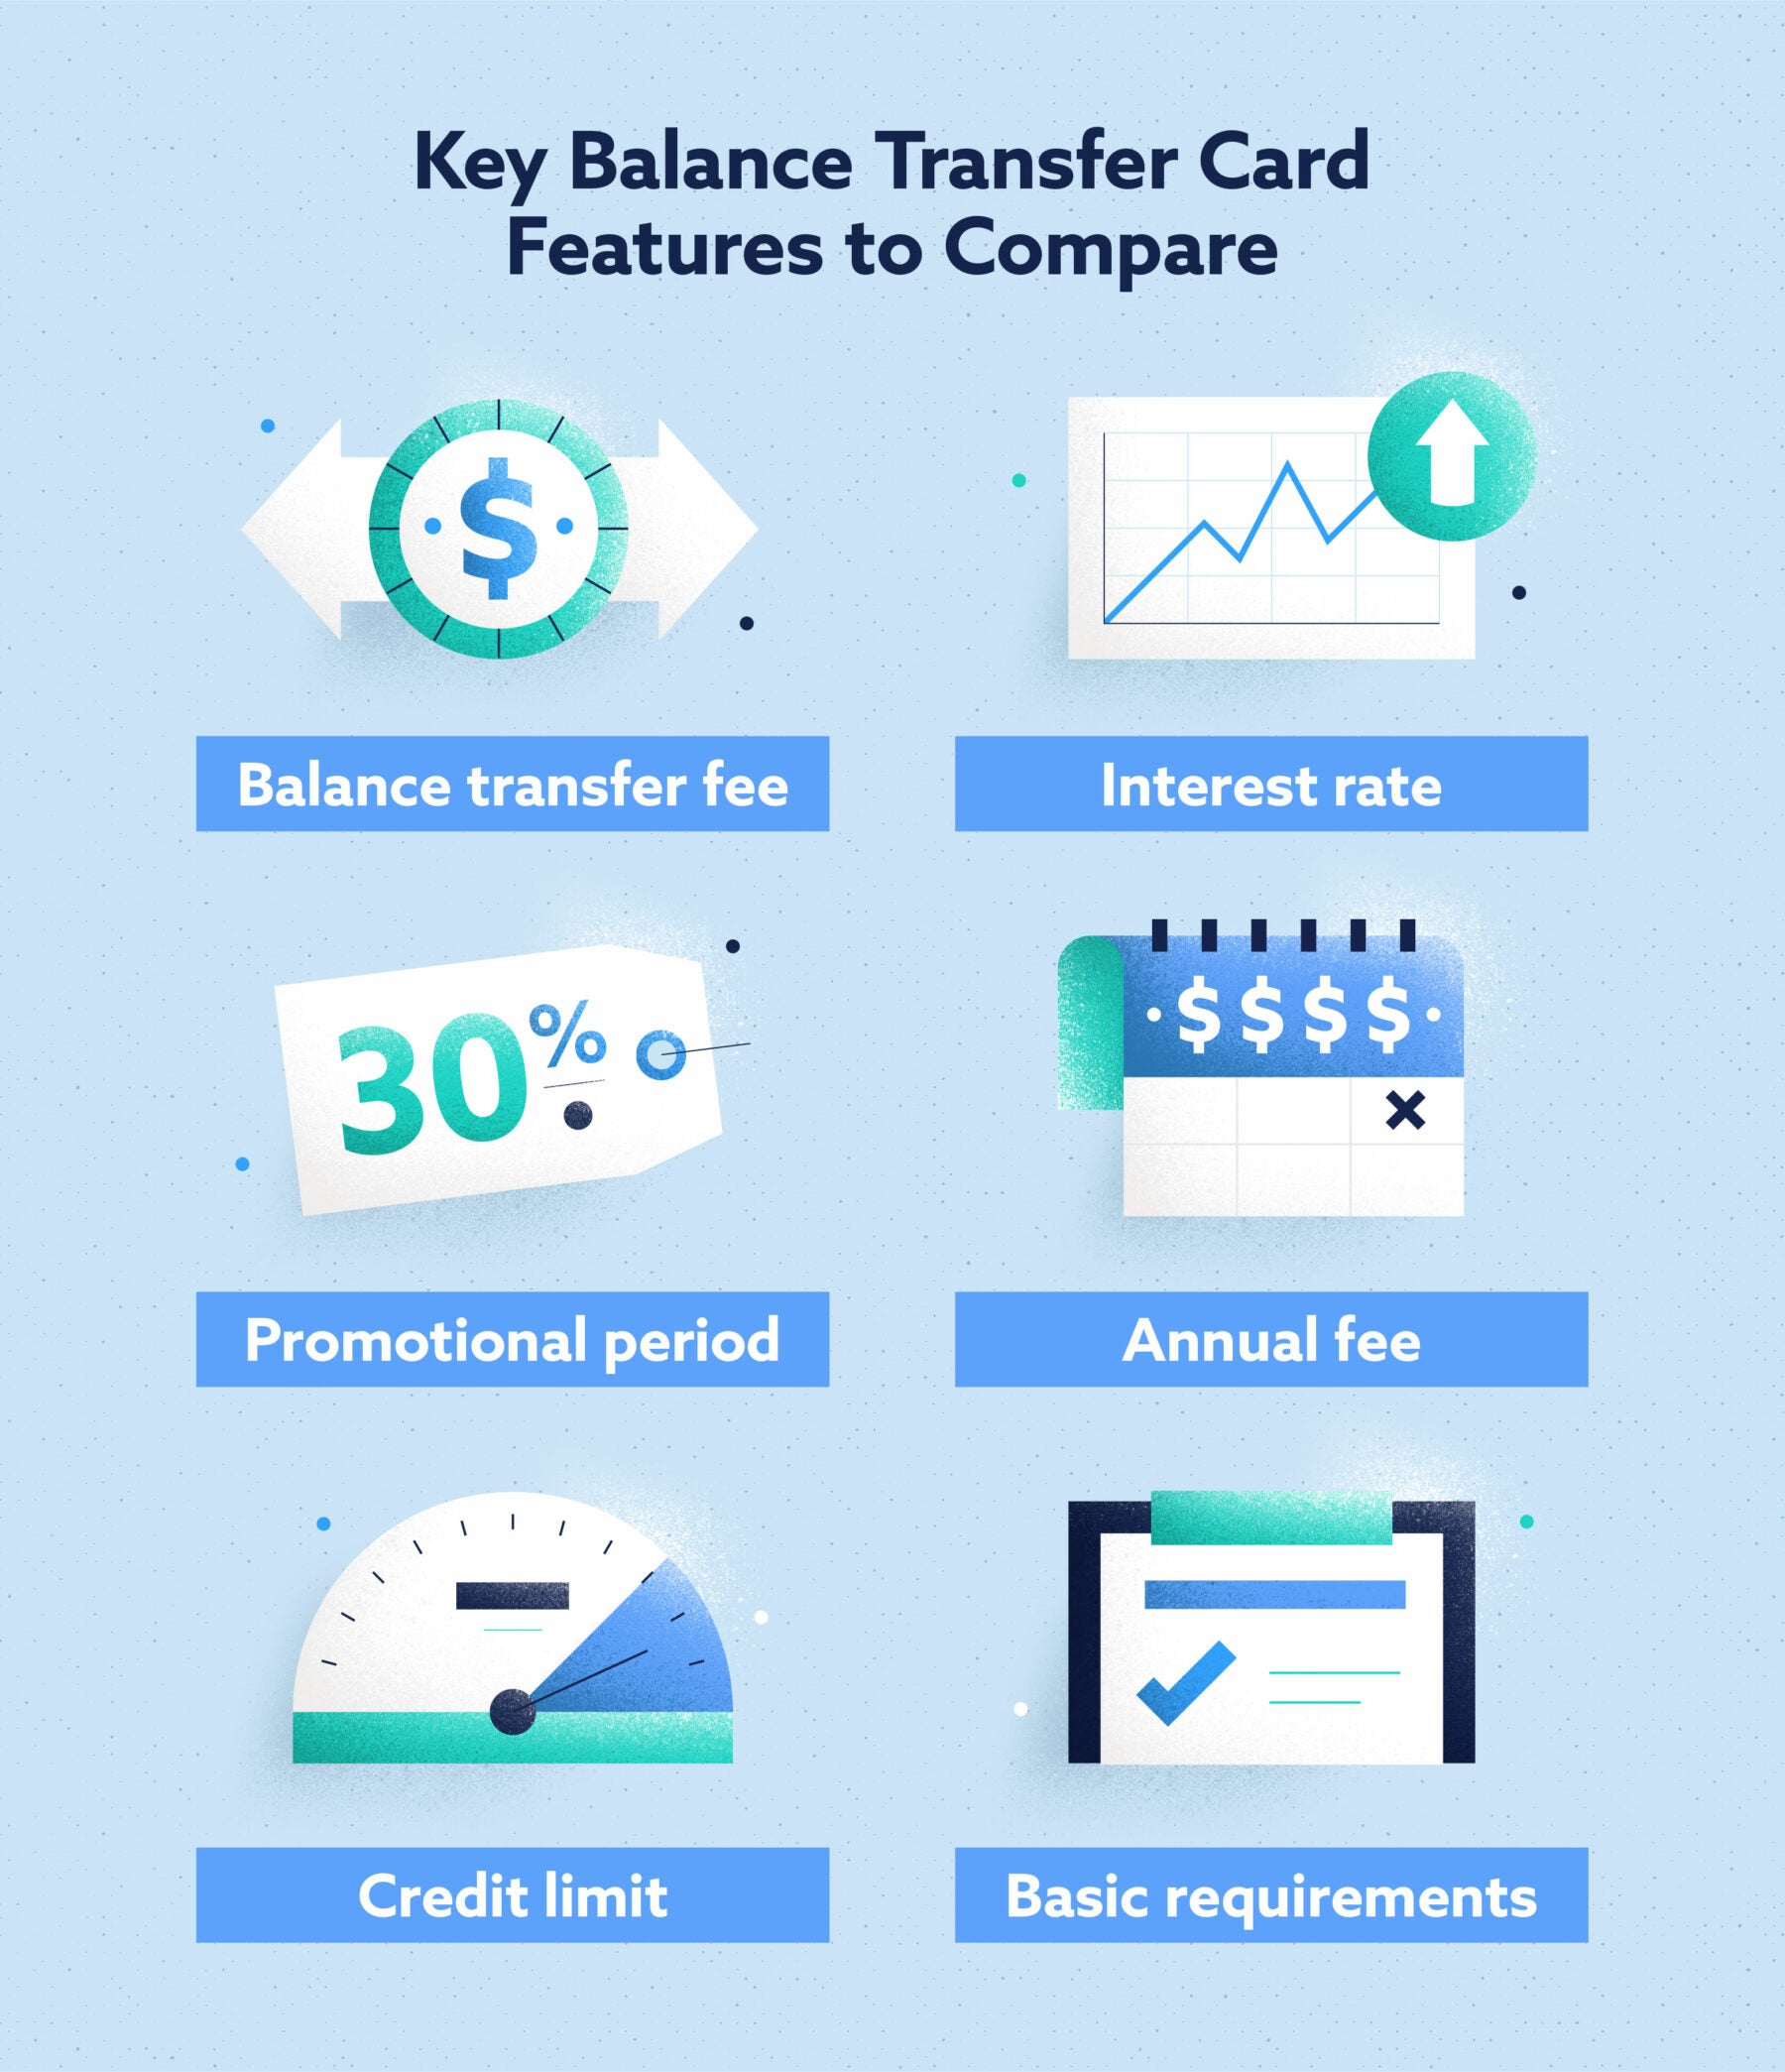 Key Balance Transfer Card Features to Compare Image